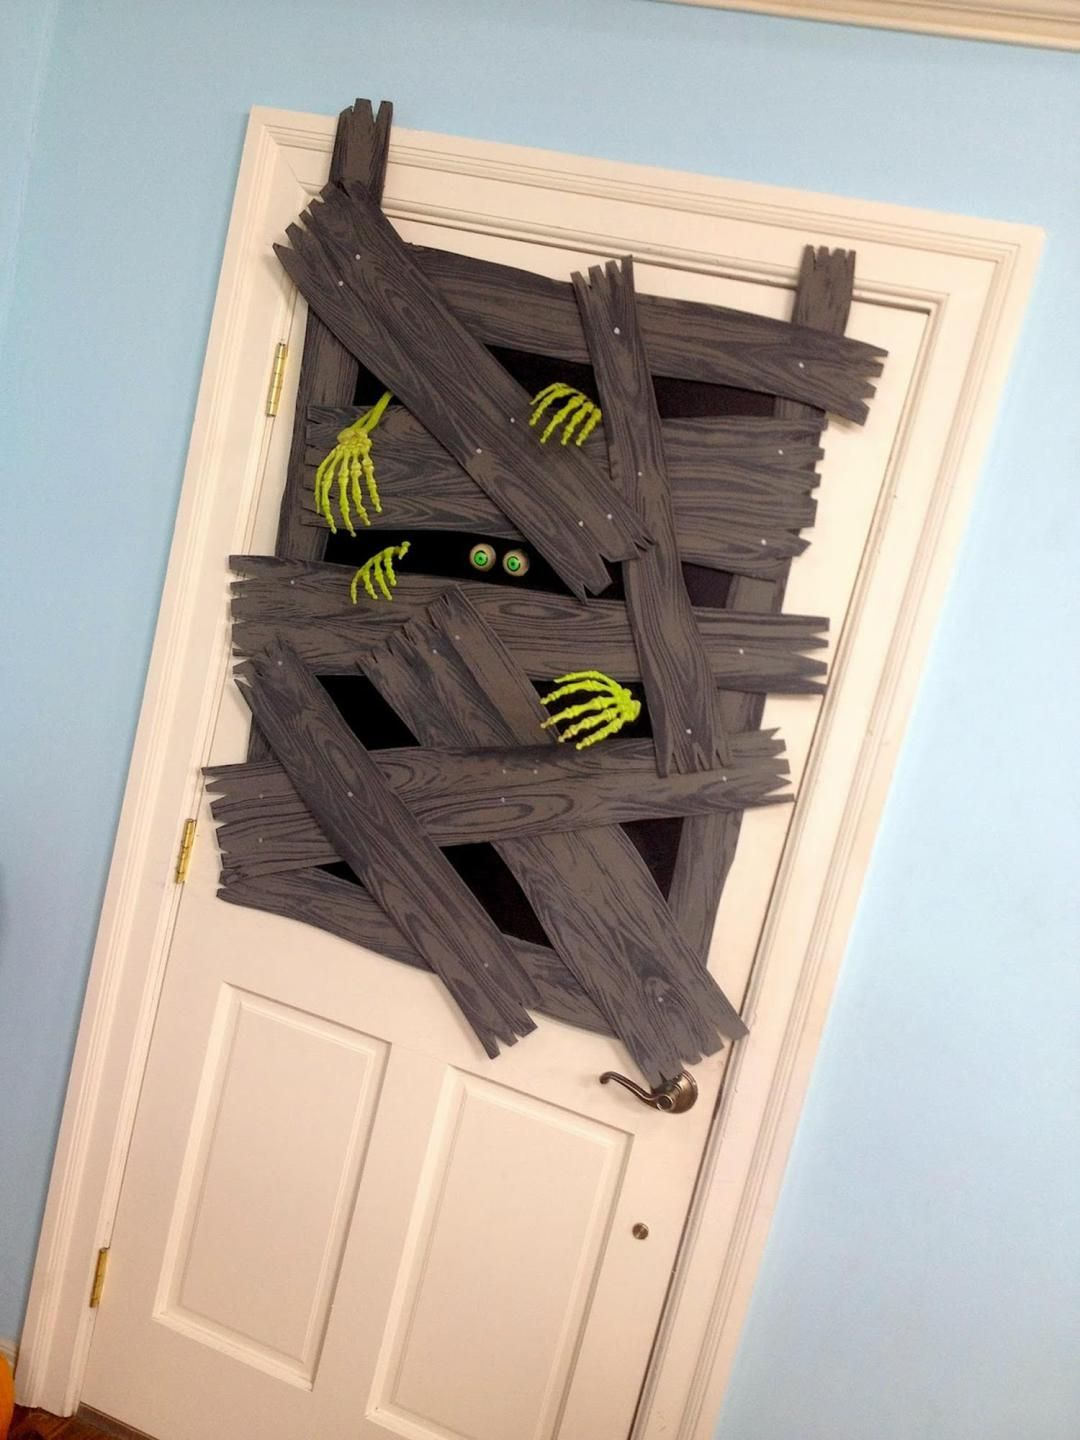 37 DIY Halloween Door Decorations Ideas Halloween door decorations - Halloween Door Decorations Ideas